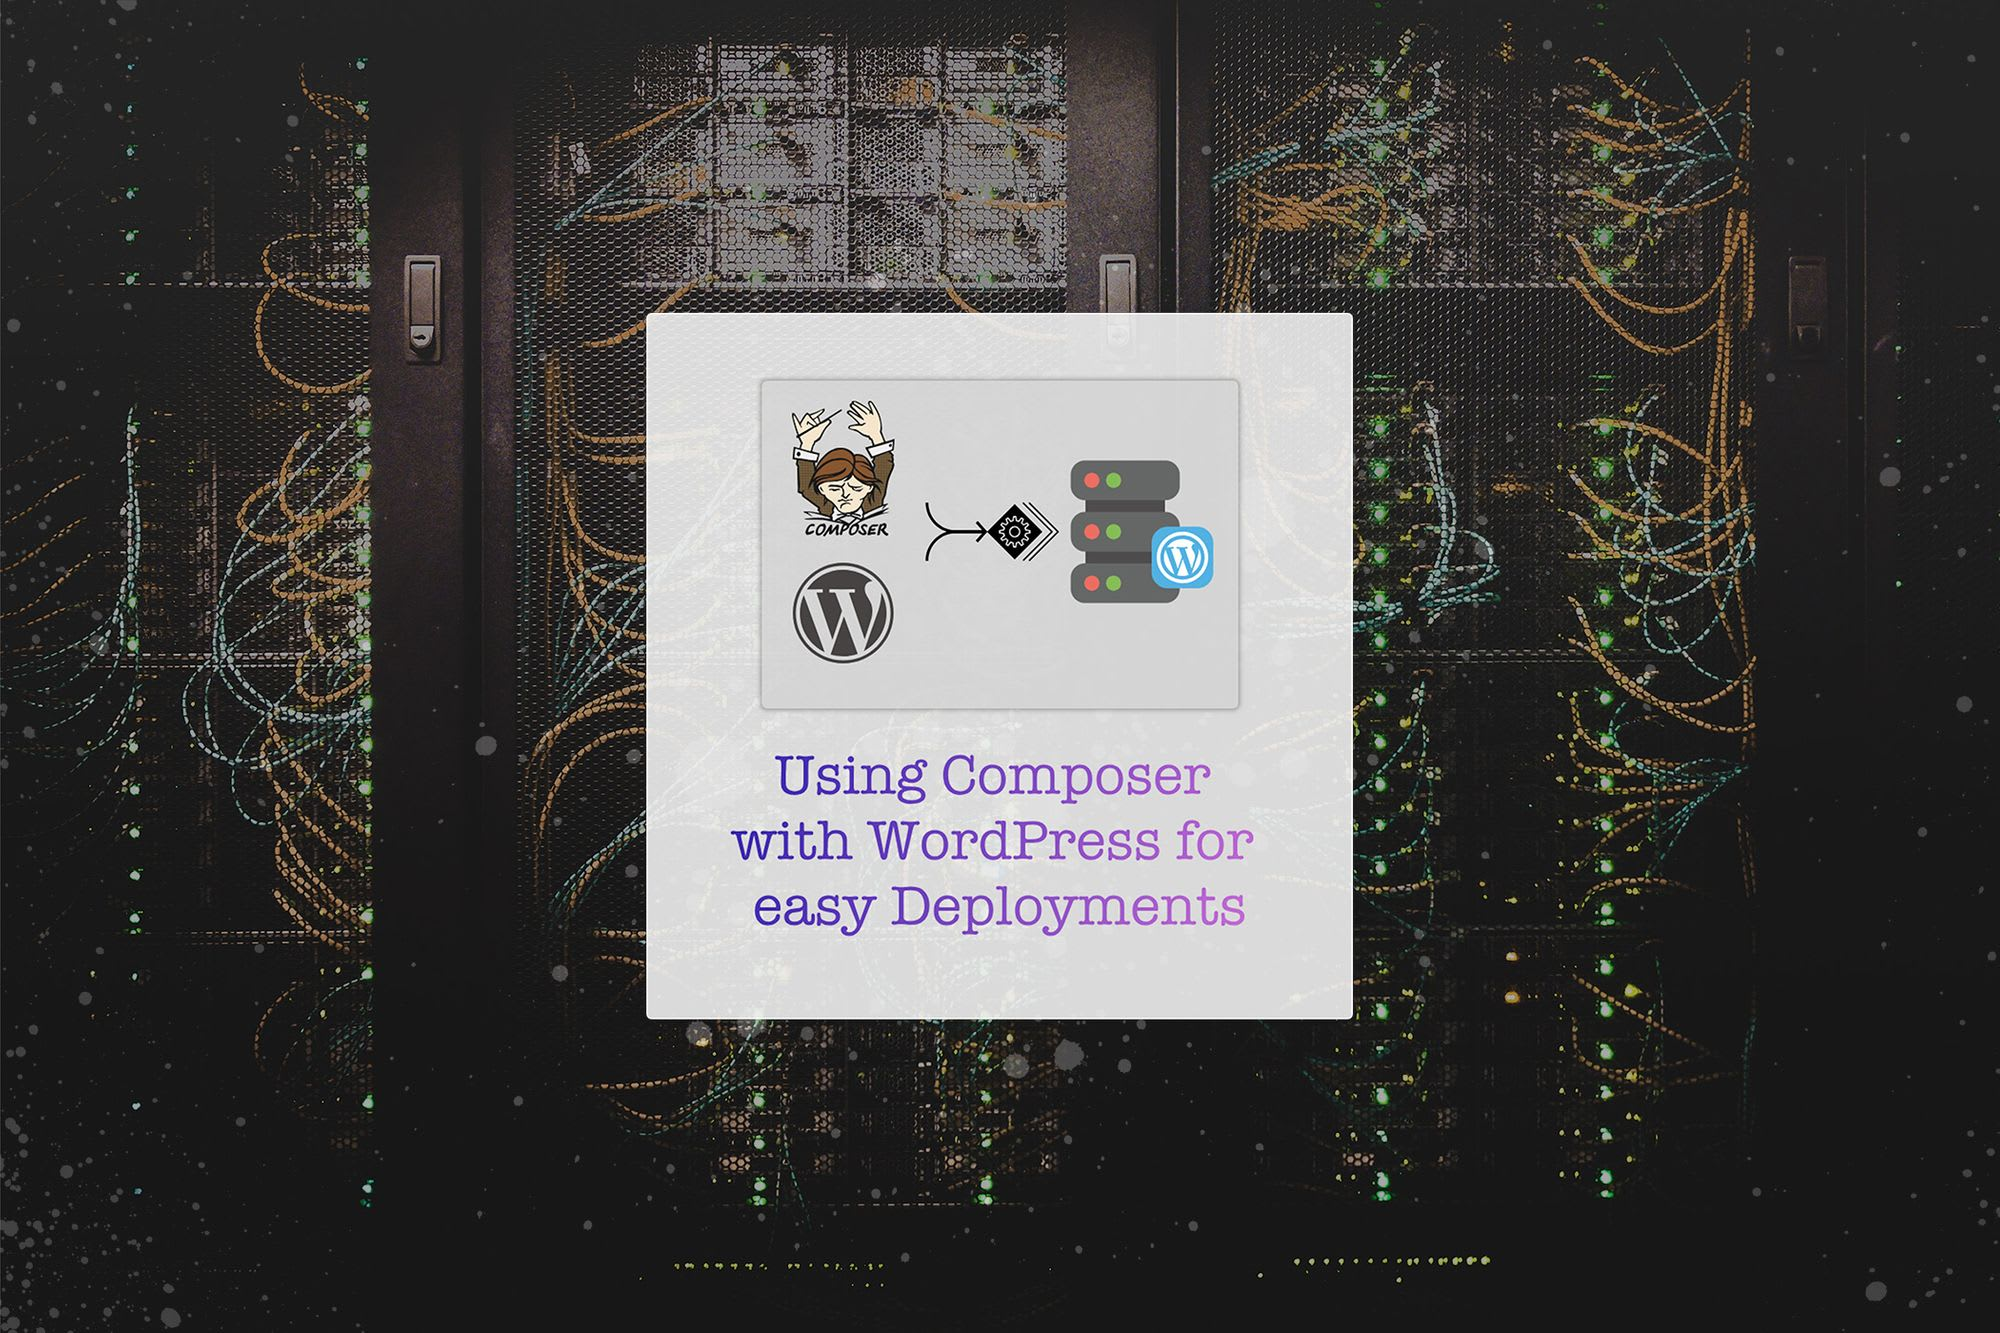 Using Composer for easy WordPress Deployments